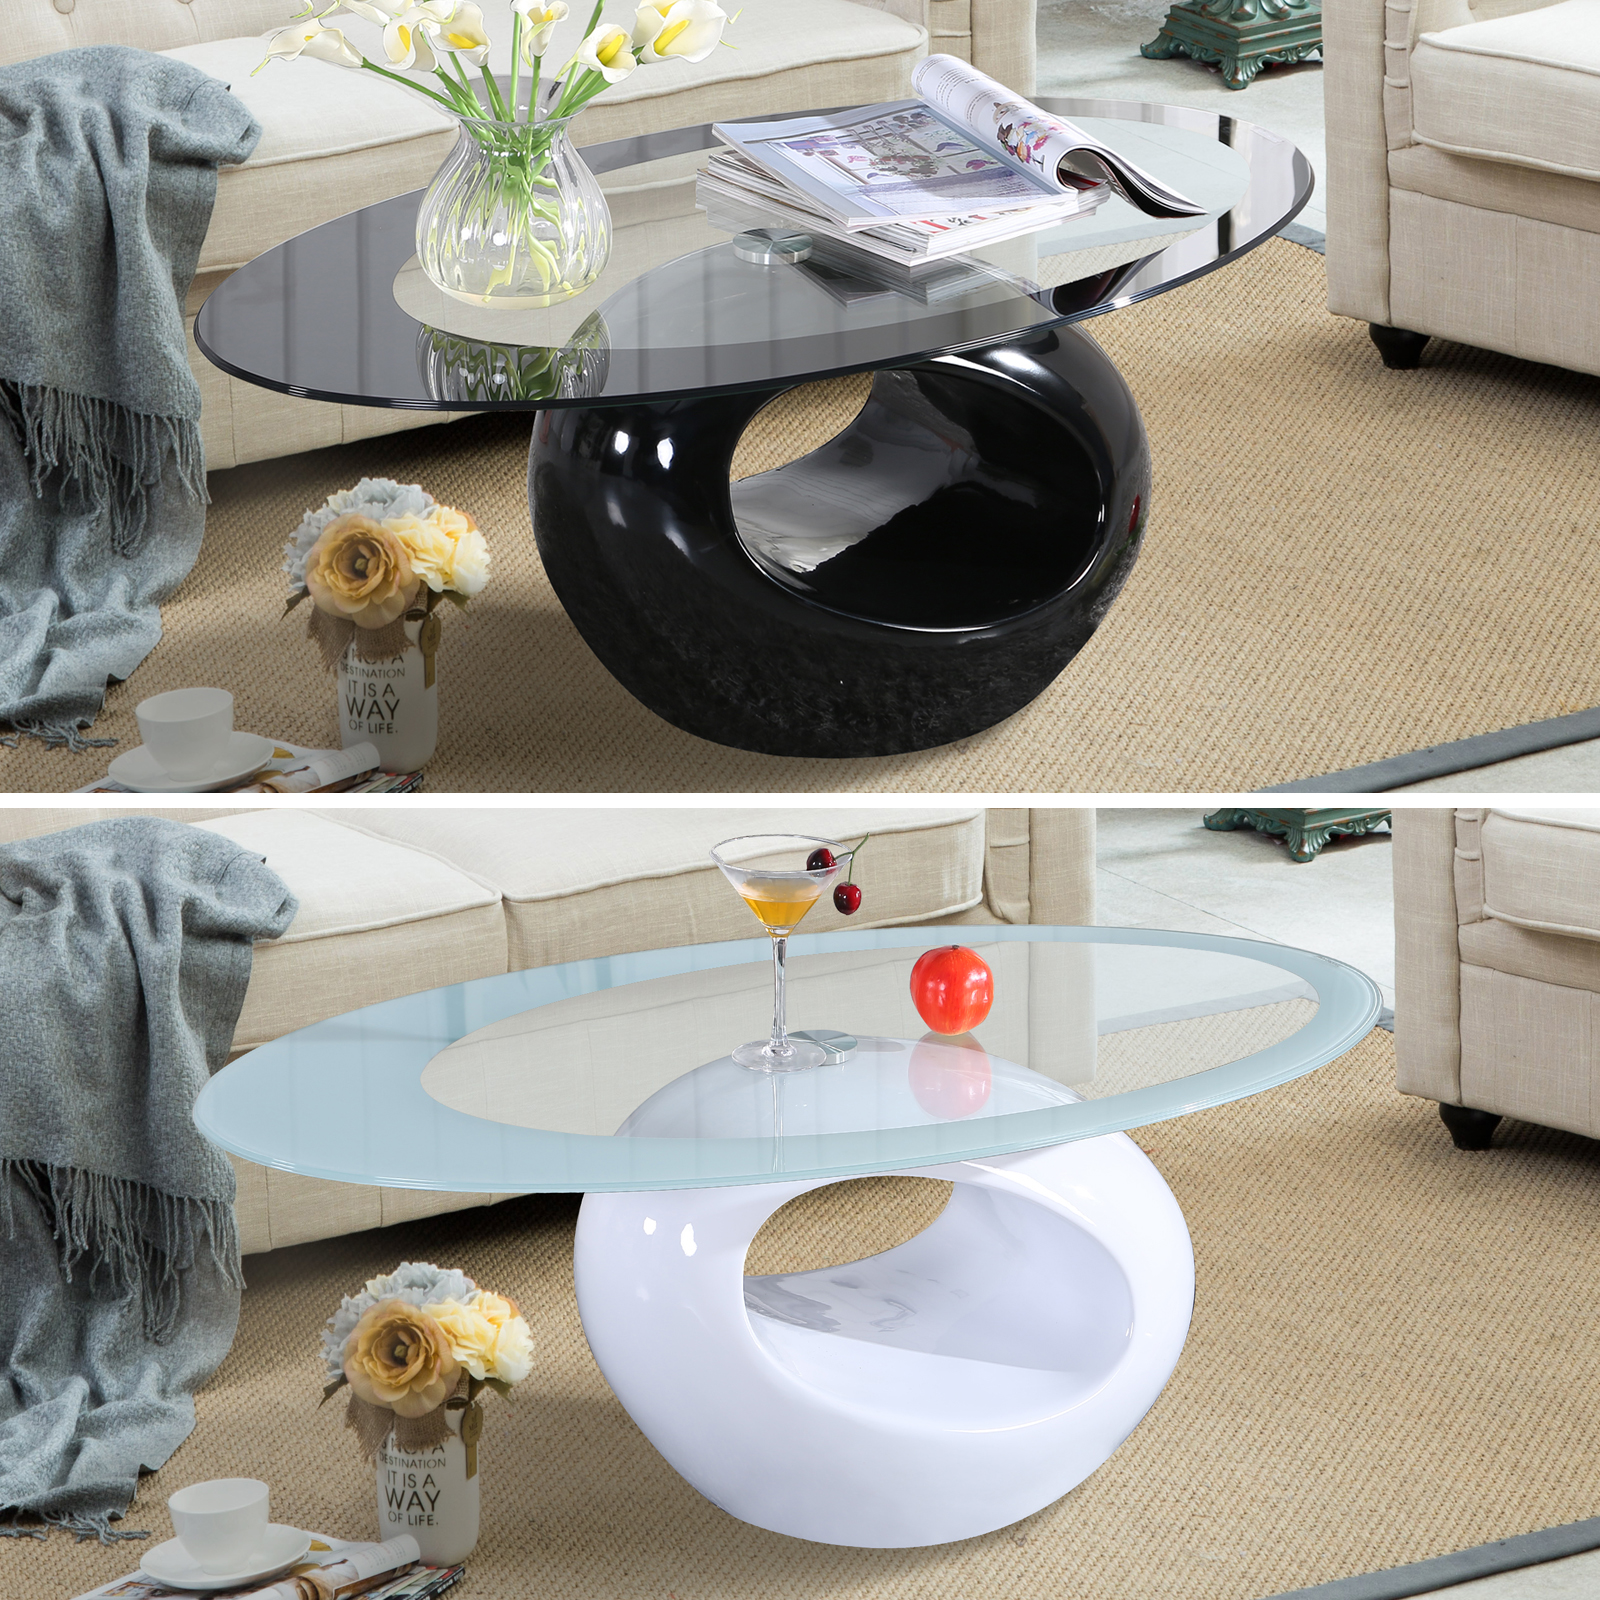 Oval Coffee Table Design: Glass Oval Coffee Table Contemporary Modern Design Living